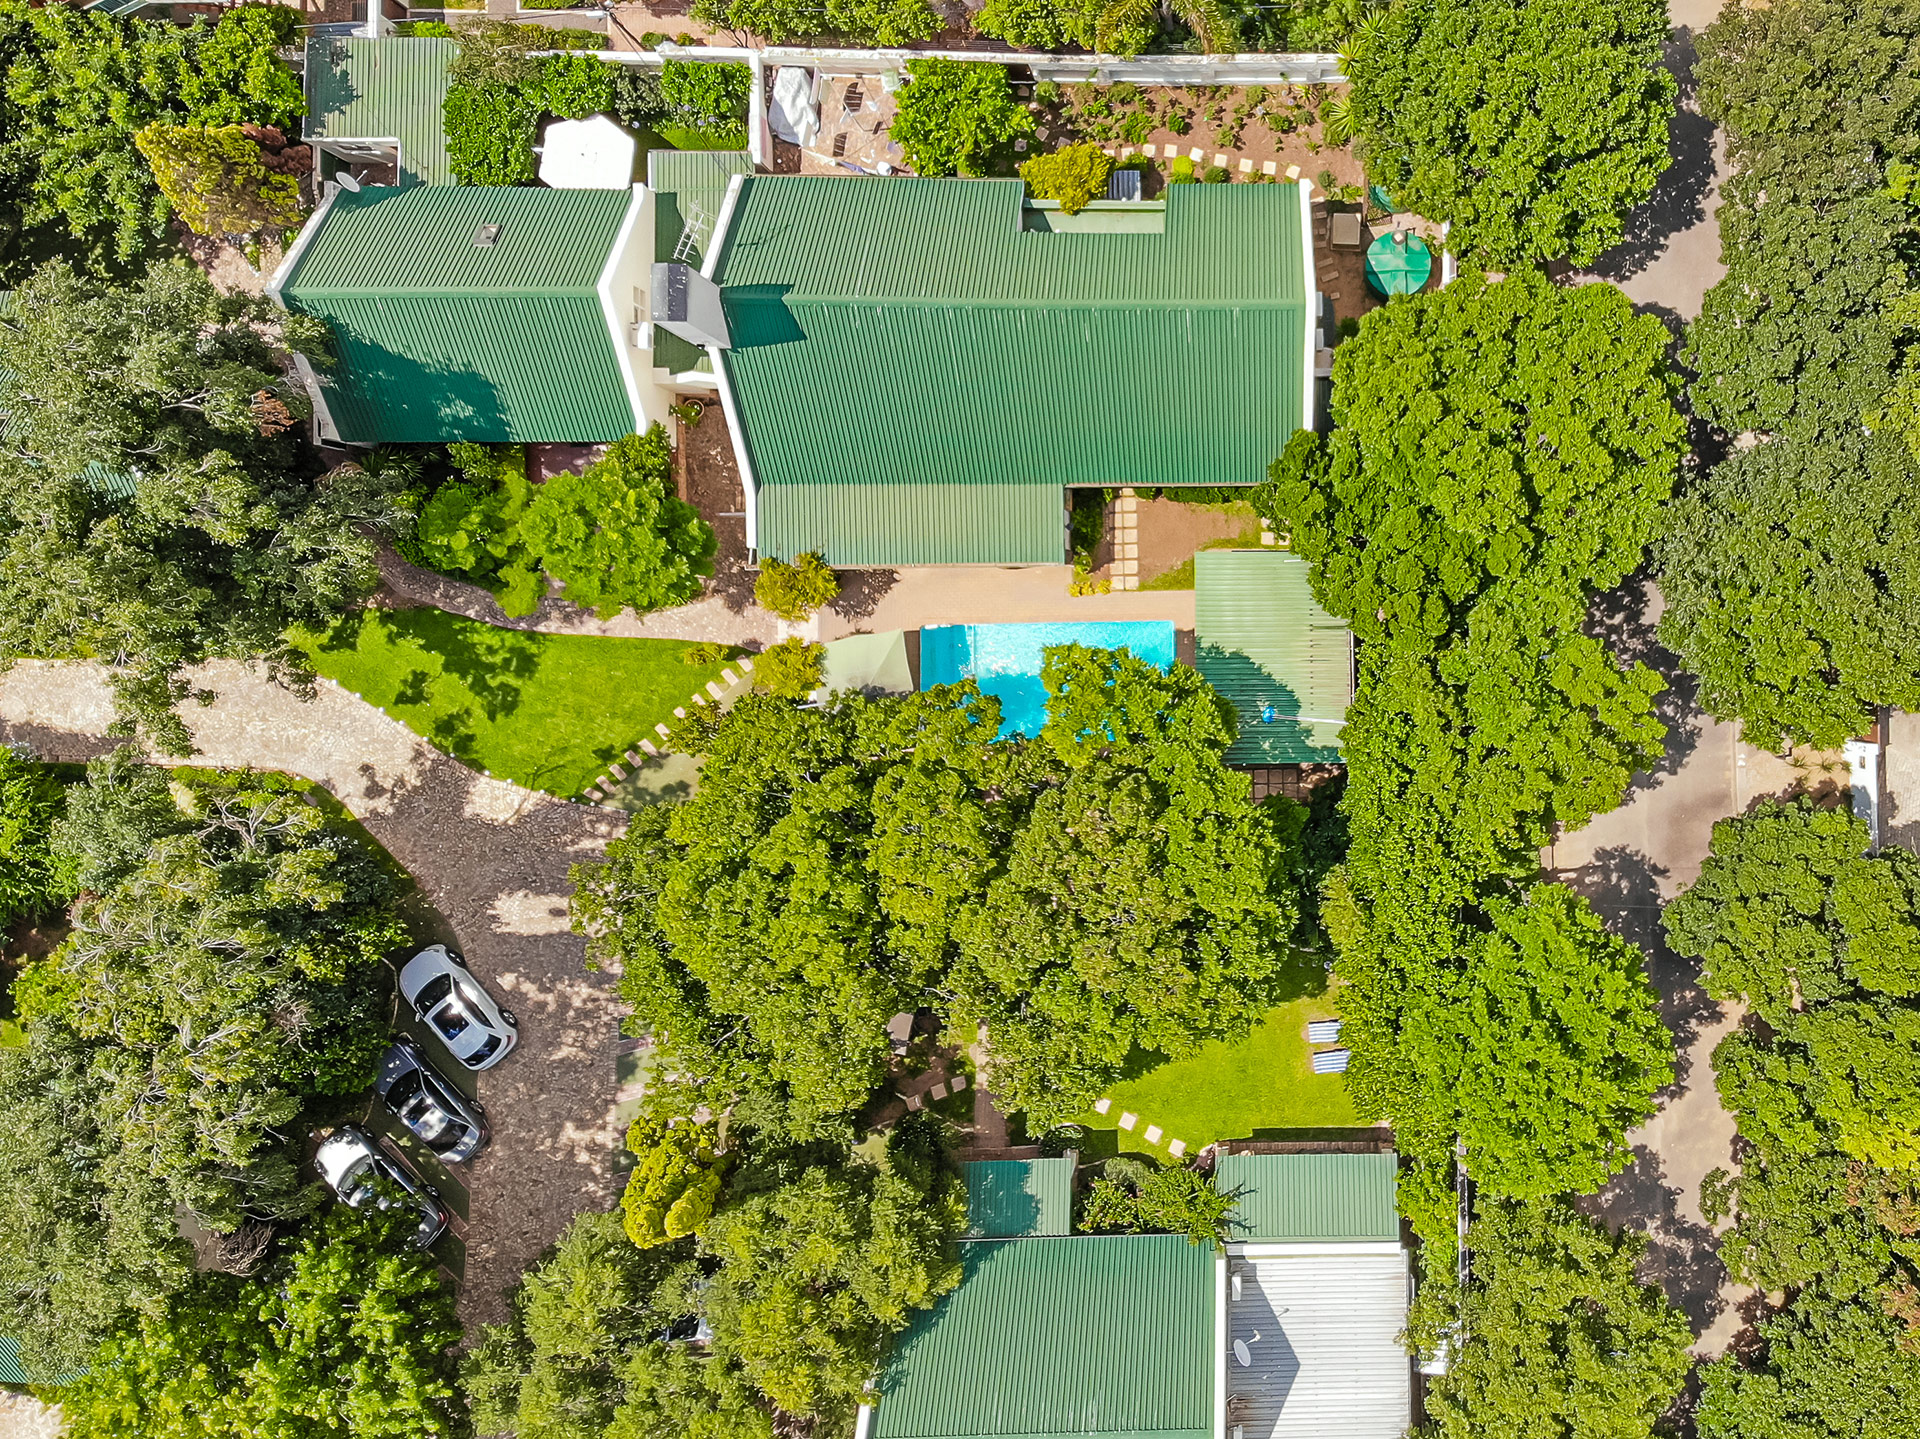 Guest Lodge in the heart of Sunninghill